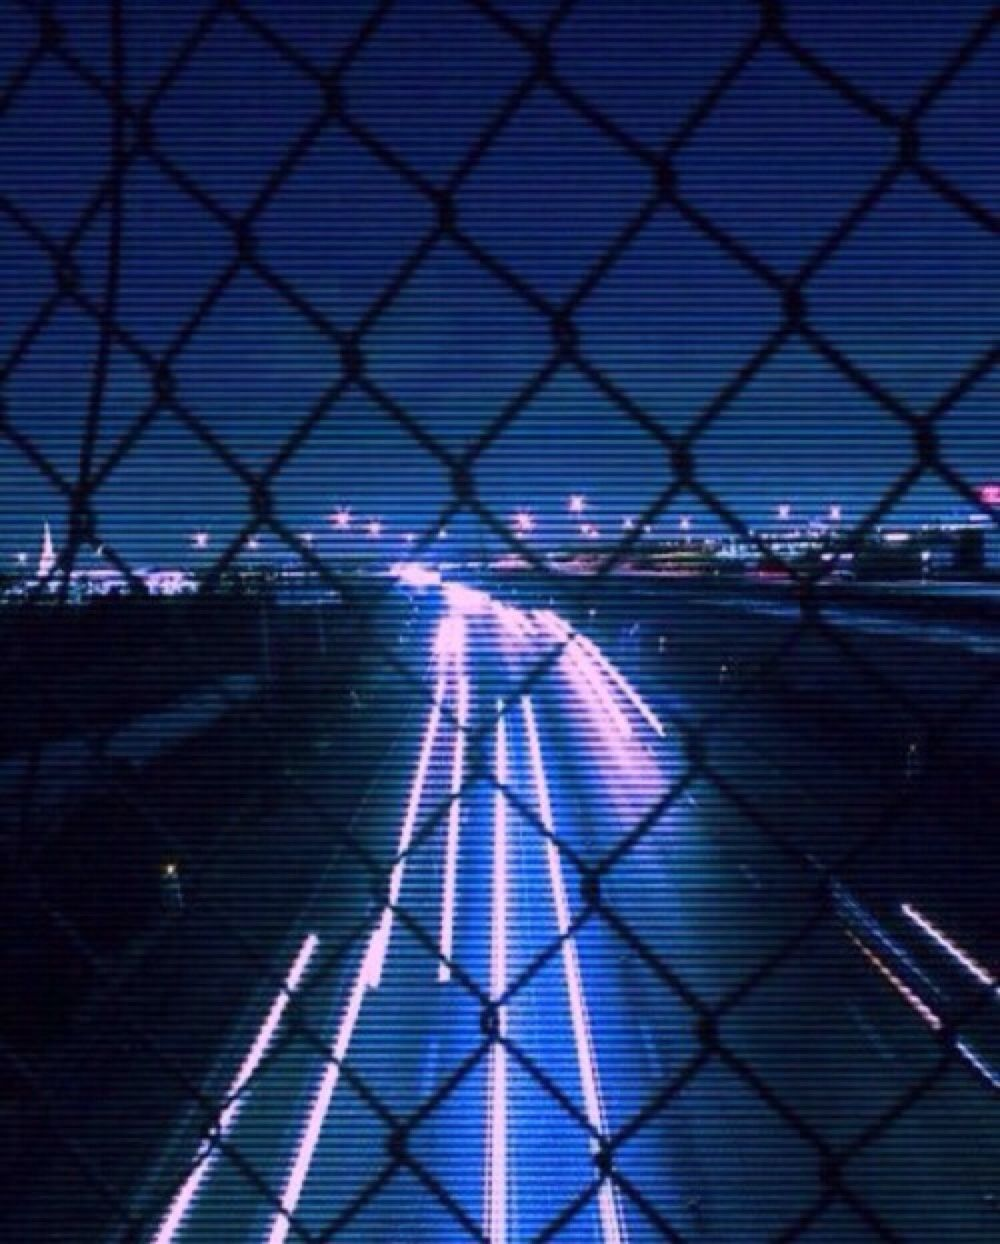 Best Neon Blue Aesthetic Wallpapers For Laptop Pictures